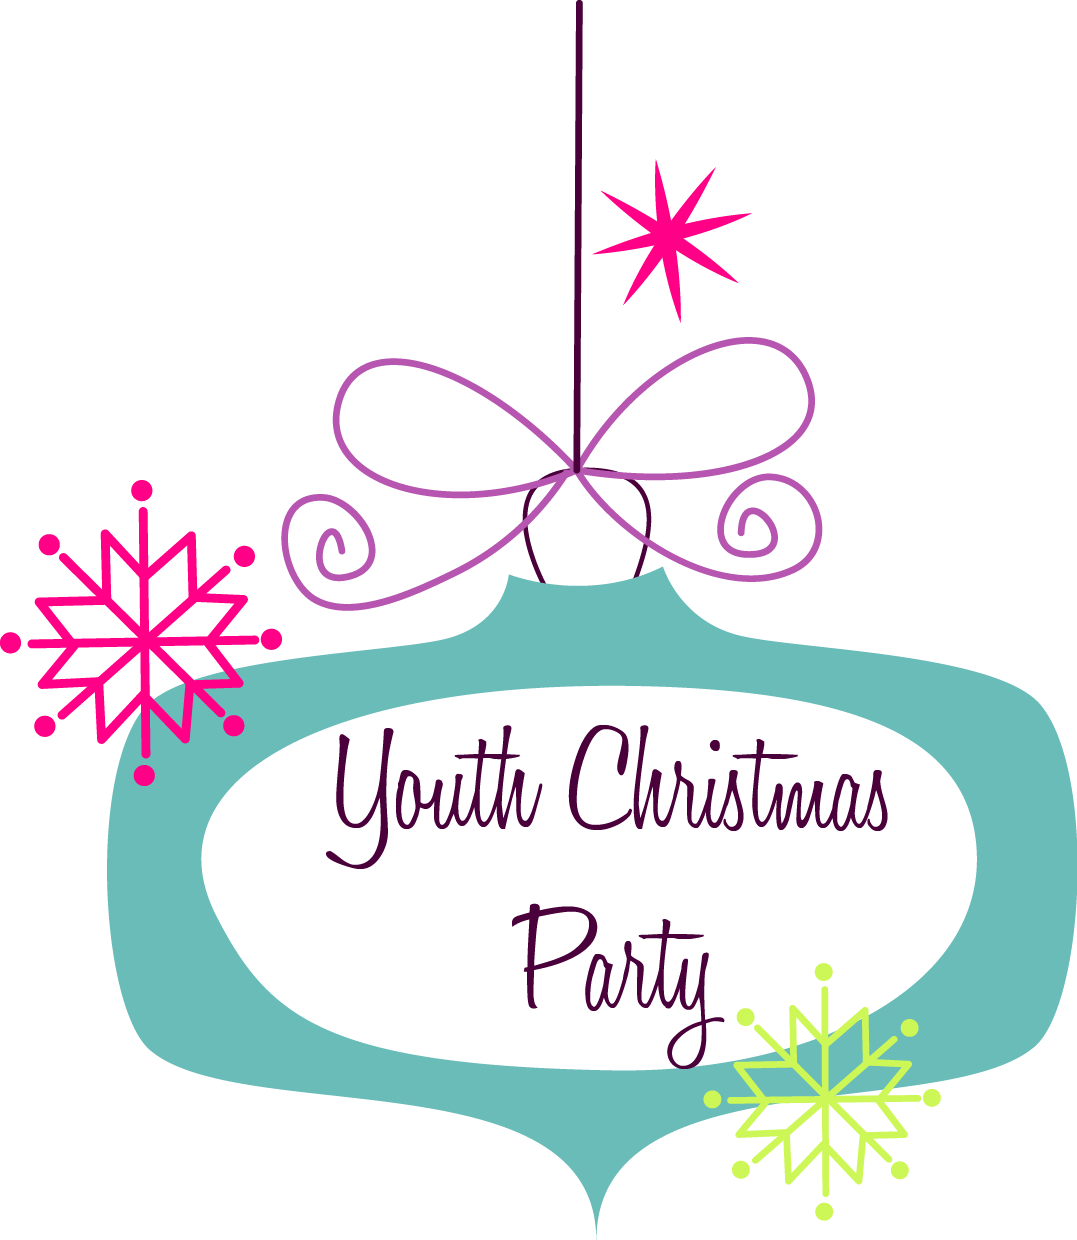 Christmas party clipart images clipart royalty free Youth Christmas Party | Elmwood Church of Christ clipart royalty free